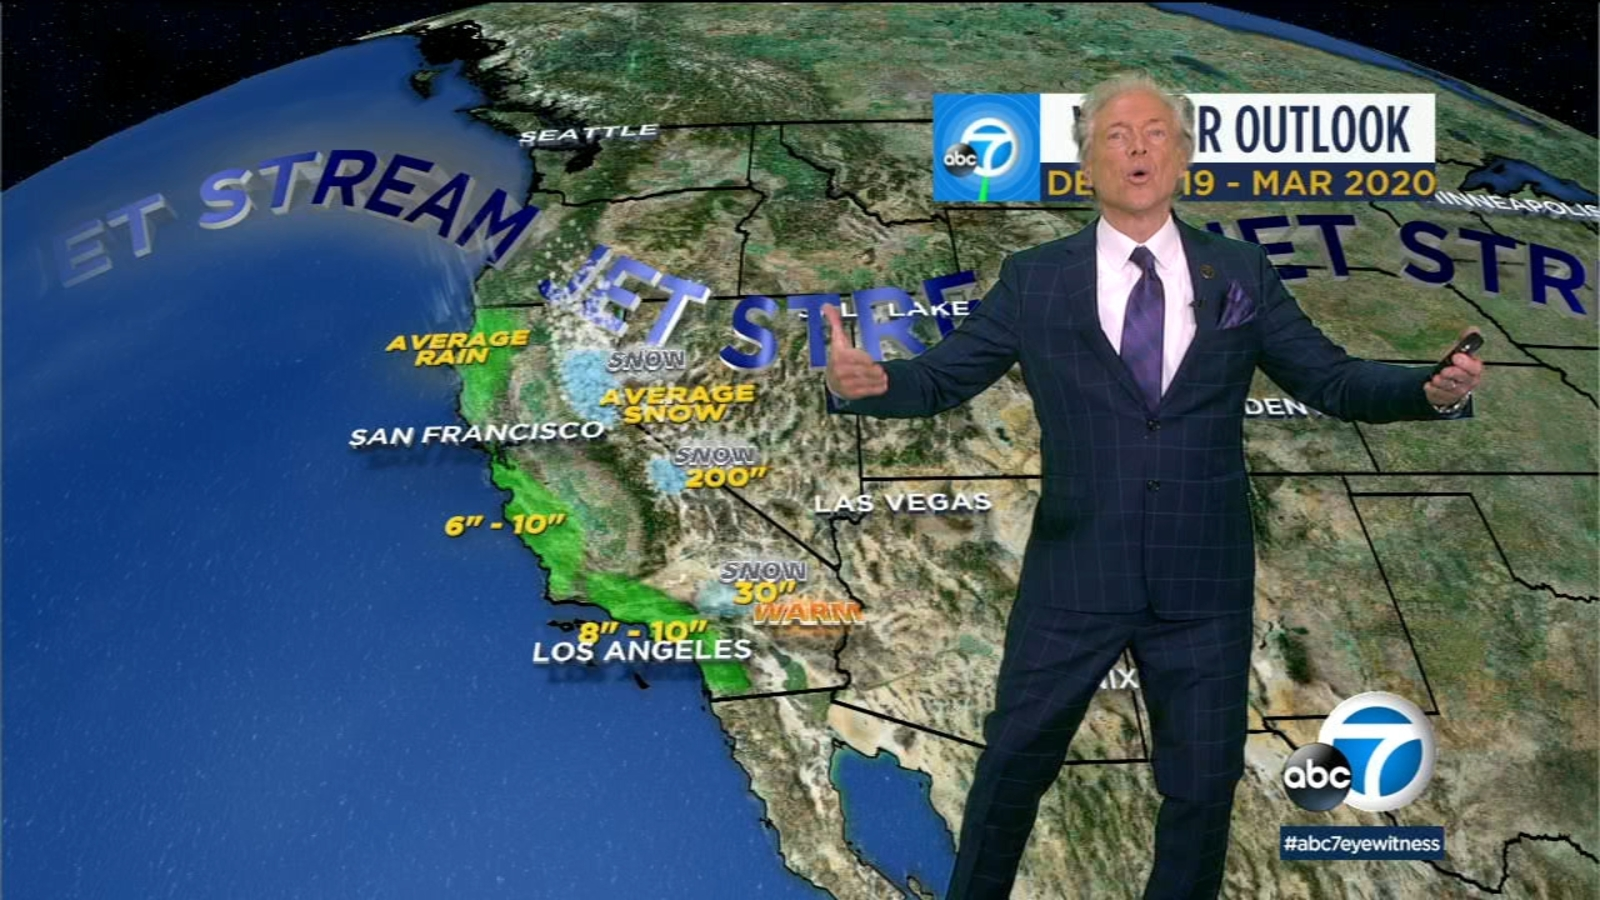 SoCal winter 2019 outlook: Region can expect less rain, warmer temps than last year